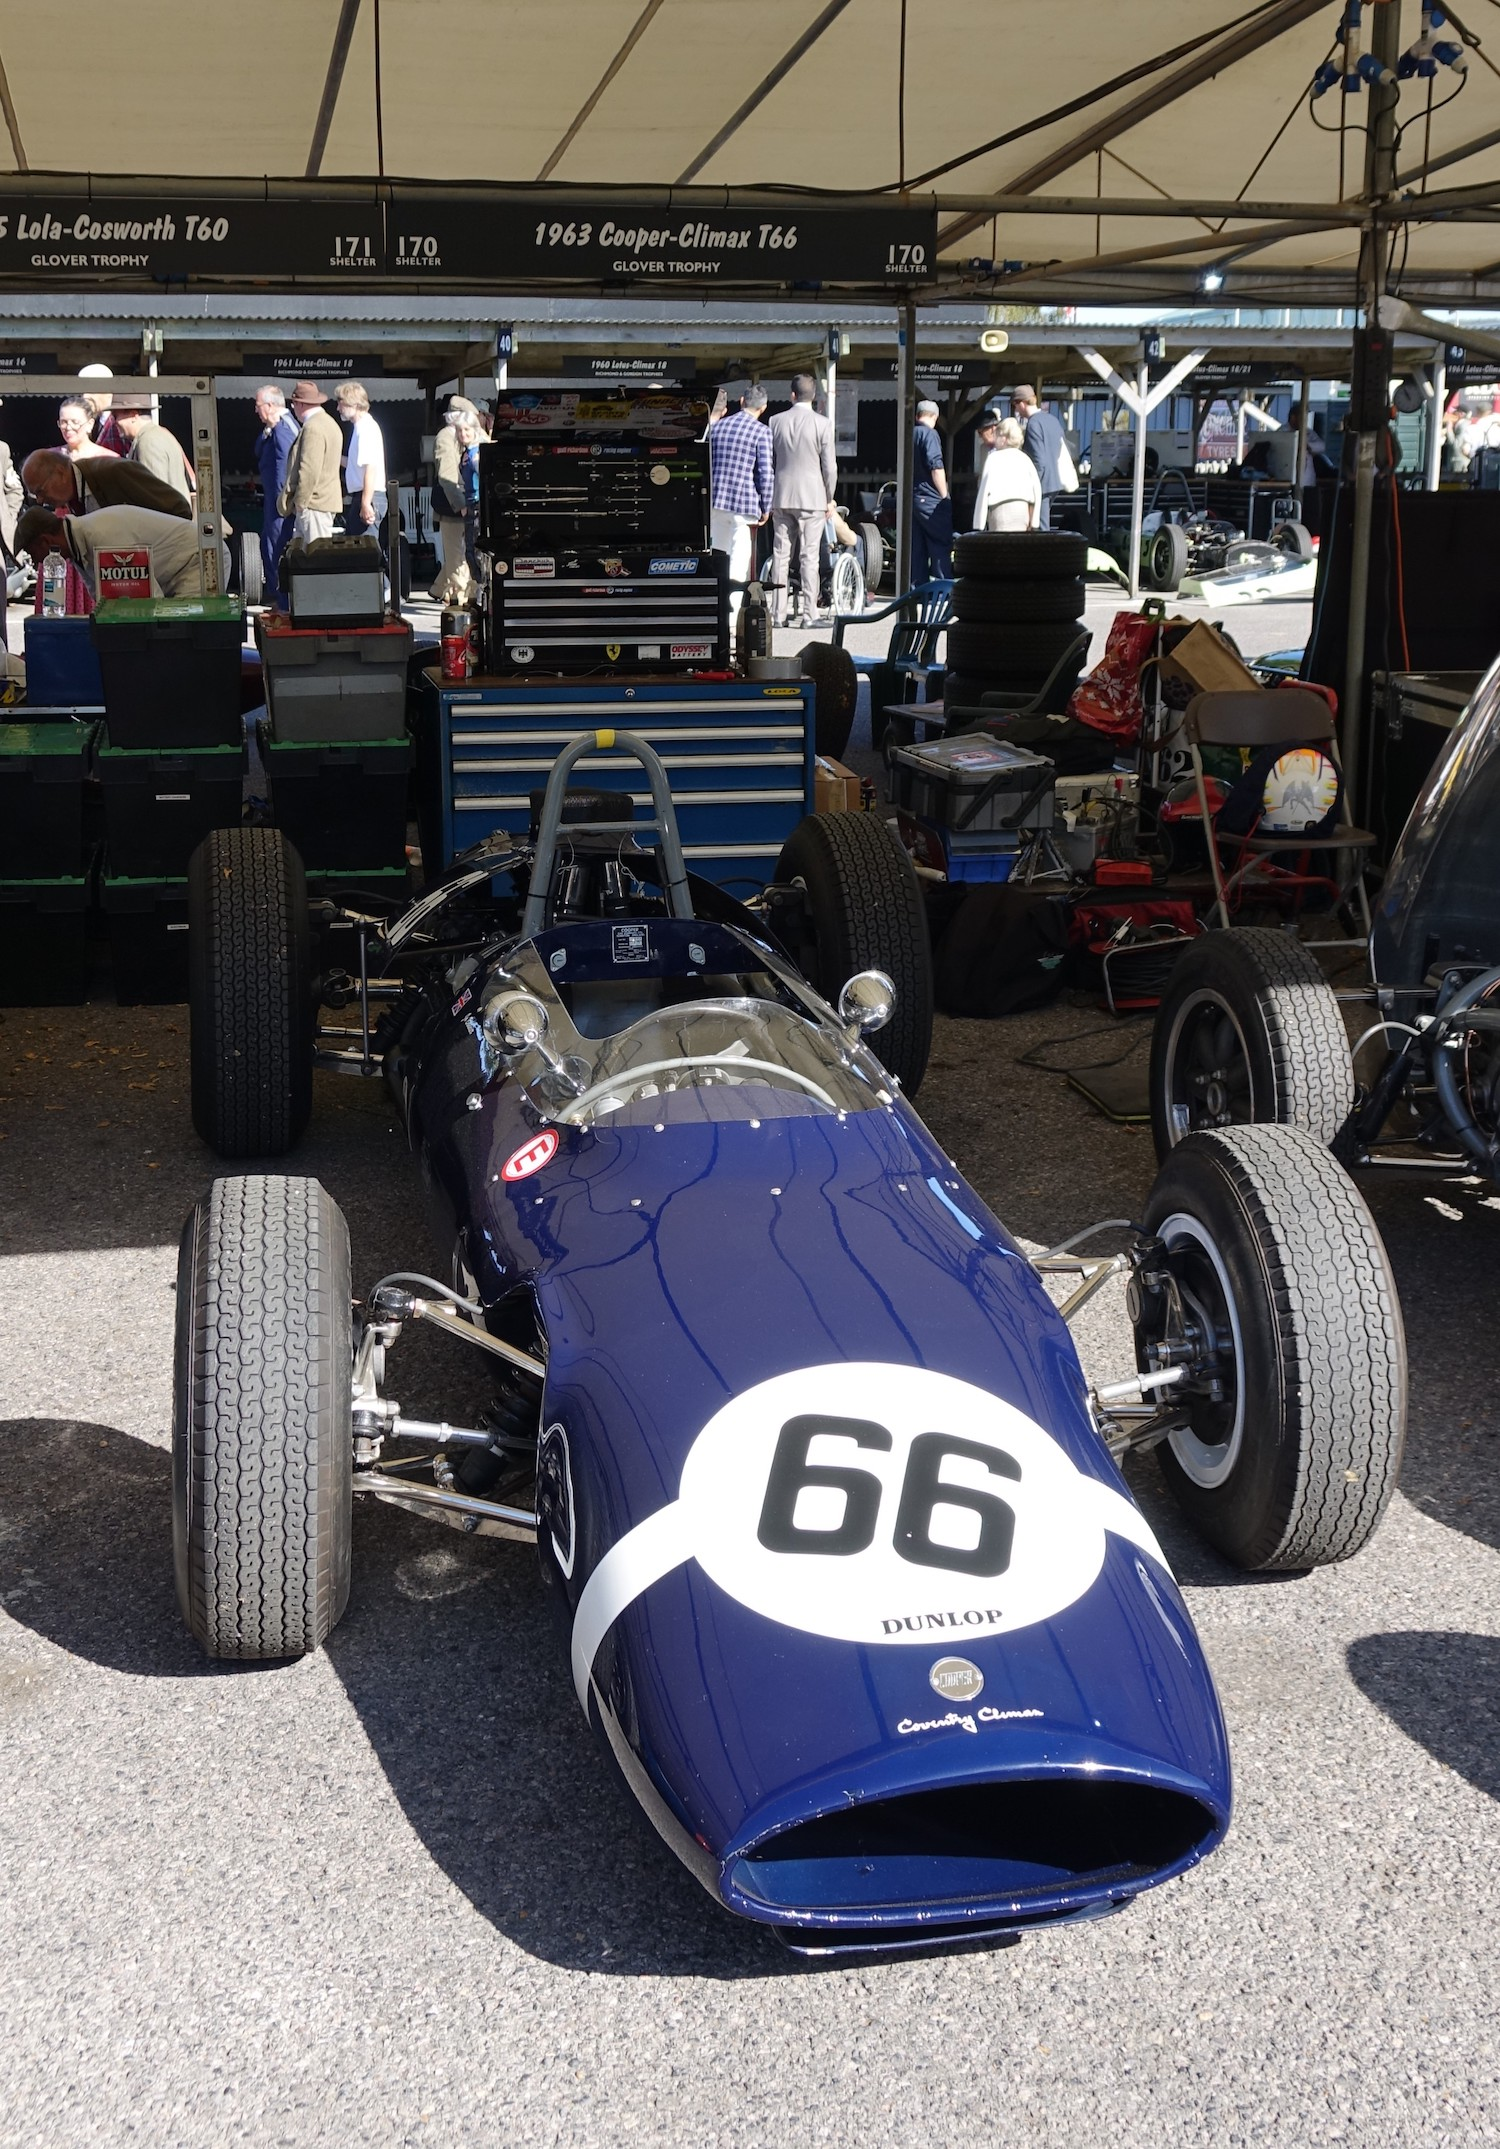 1963 Cooper-Climax T66